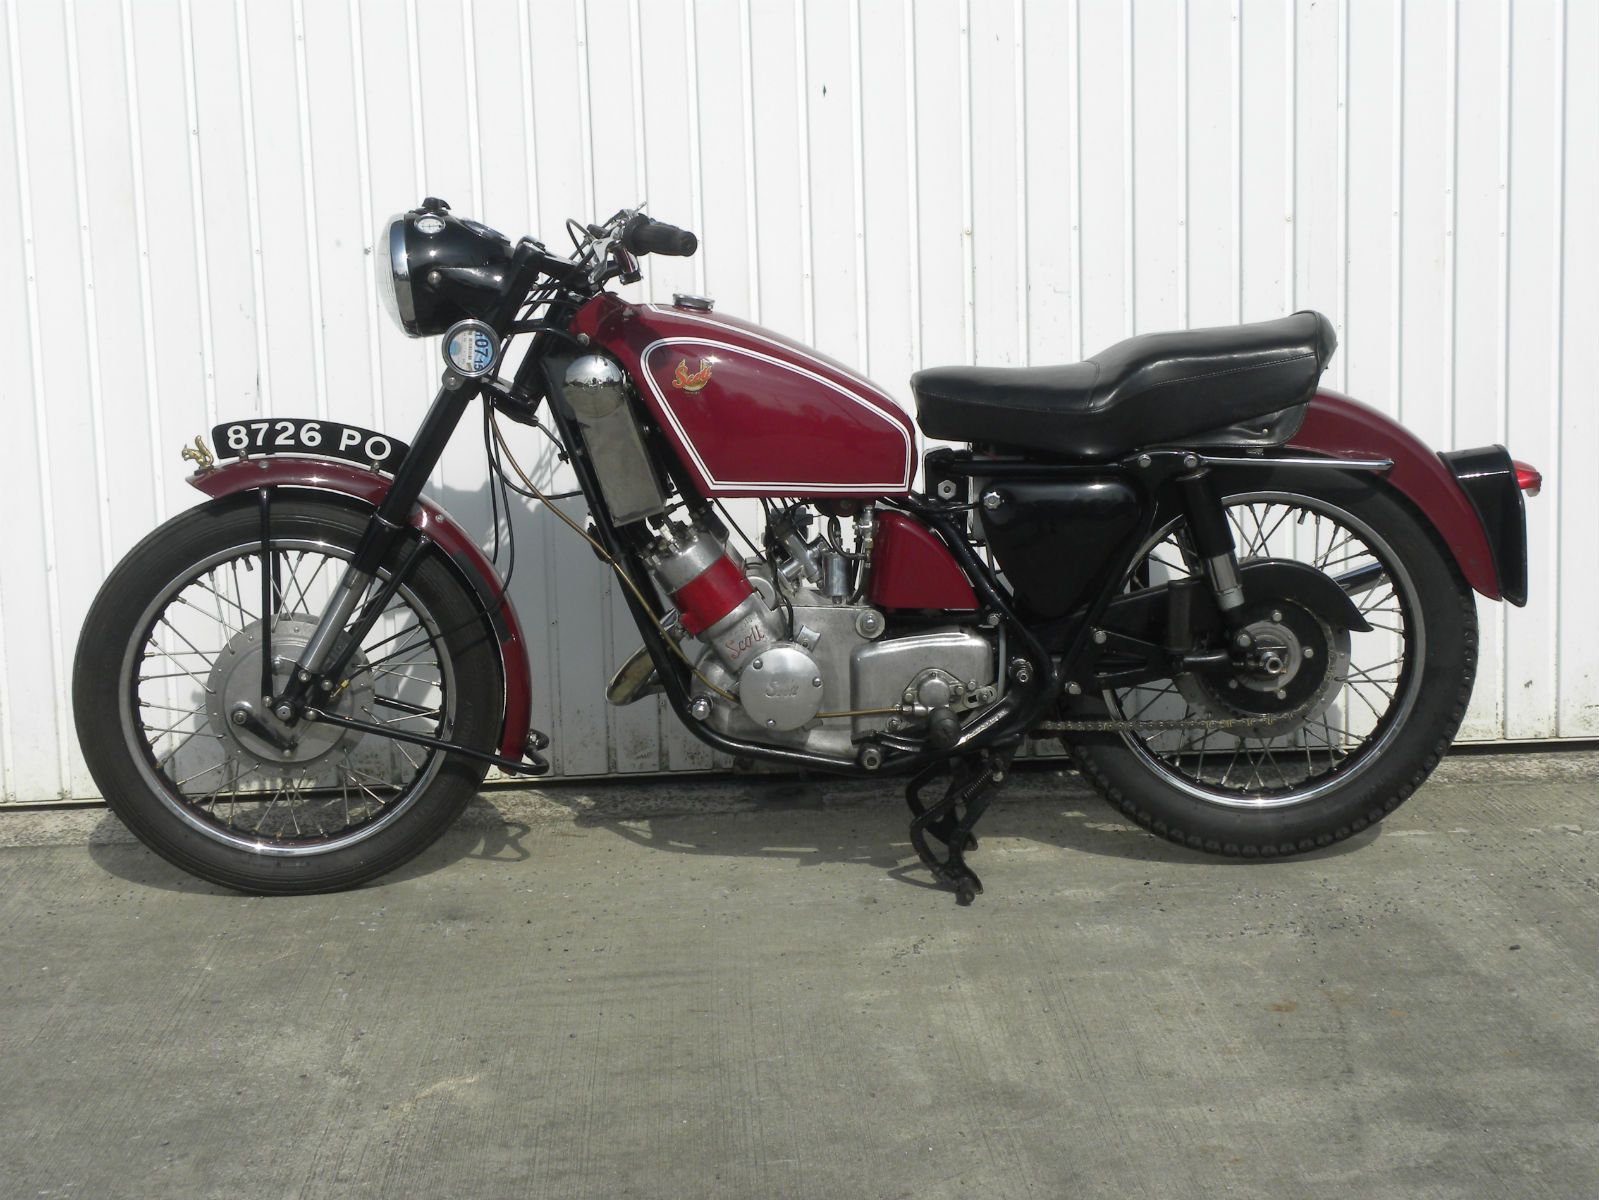 Birmingham Scott Flying Squirrel 600cc 1960 Matching Numbers Ebay Retro Motorcycle Classic Motorcycles Flying Squirrel